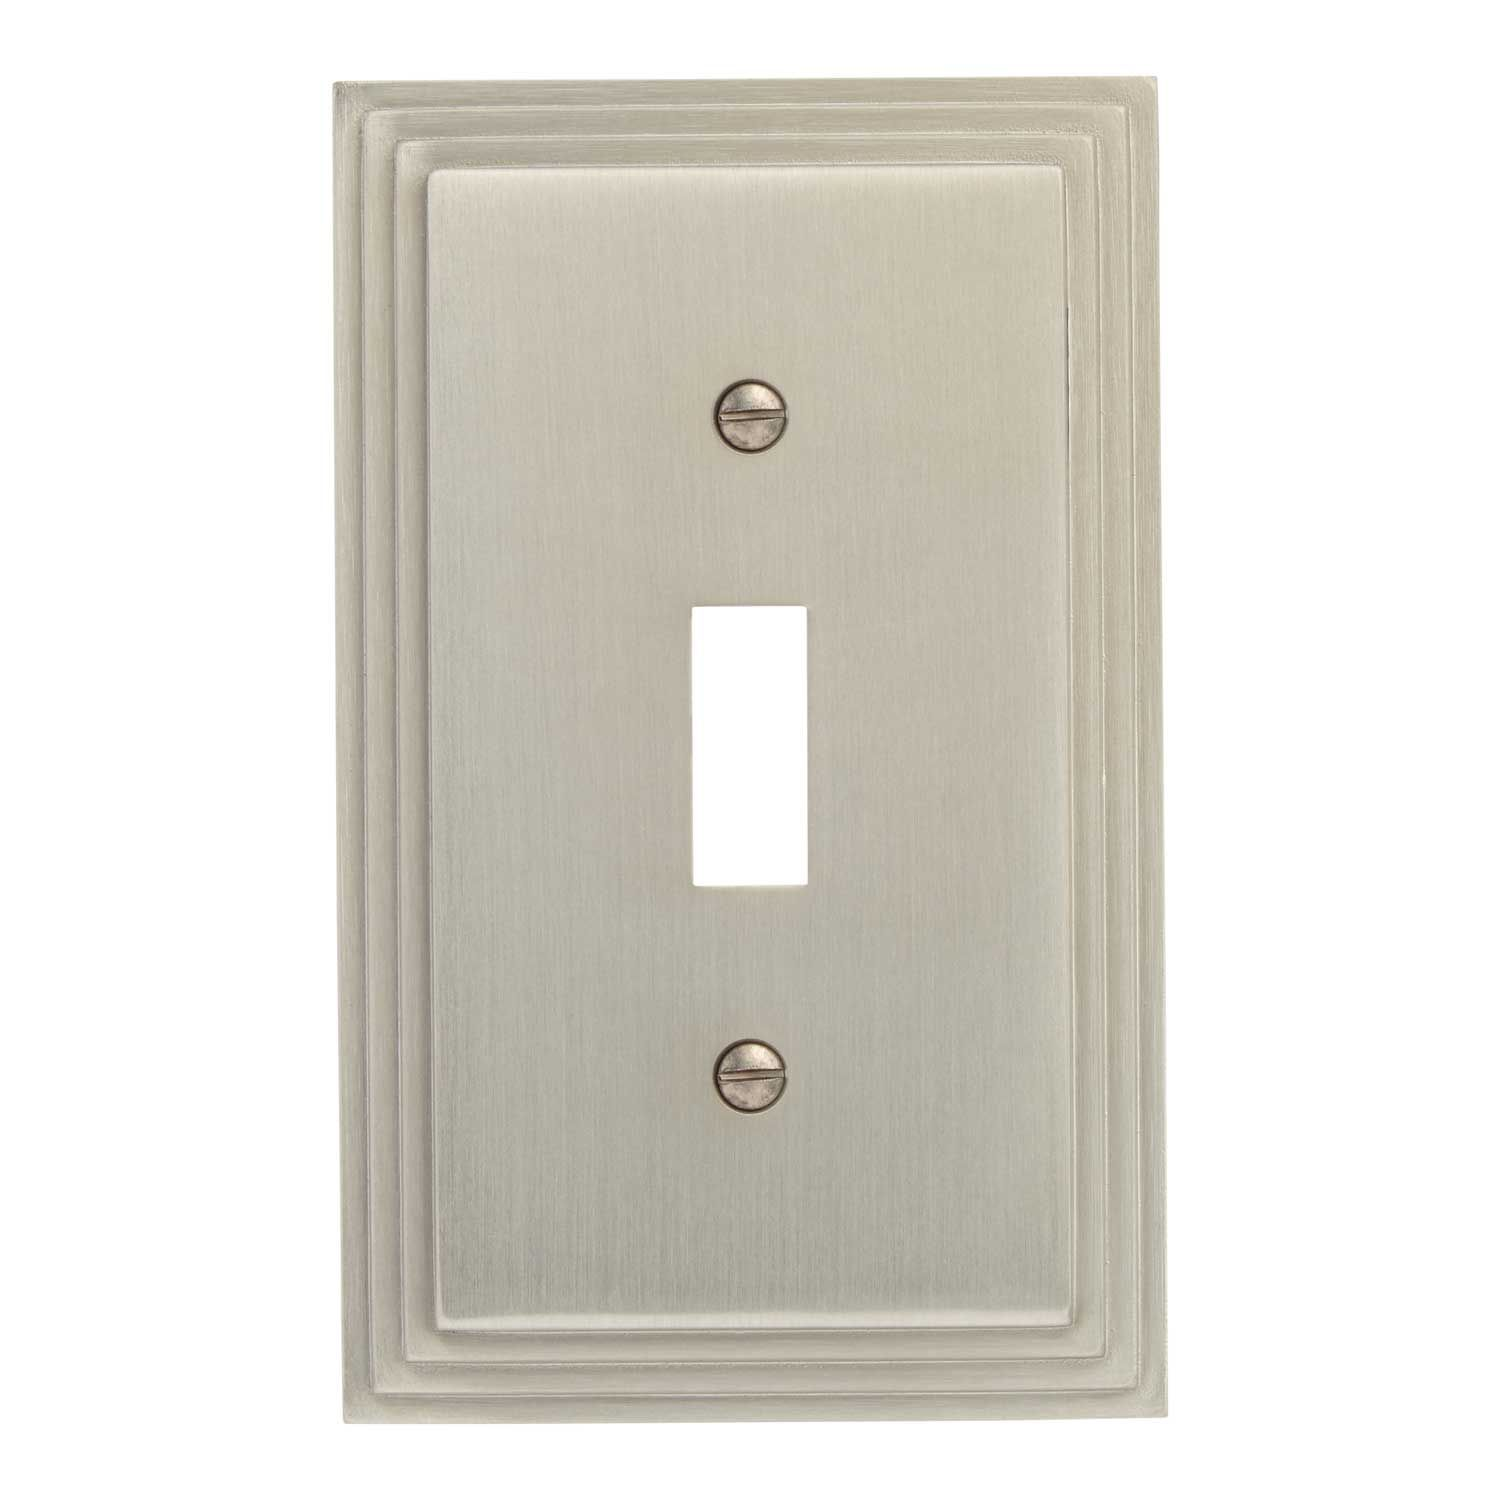 Art Deco Zinc Switch Plate - Brushed Nickel